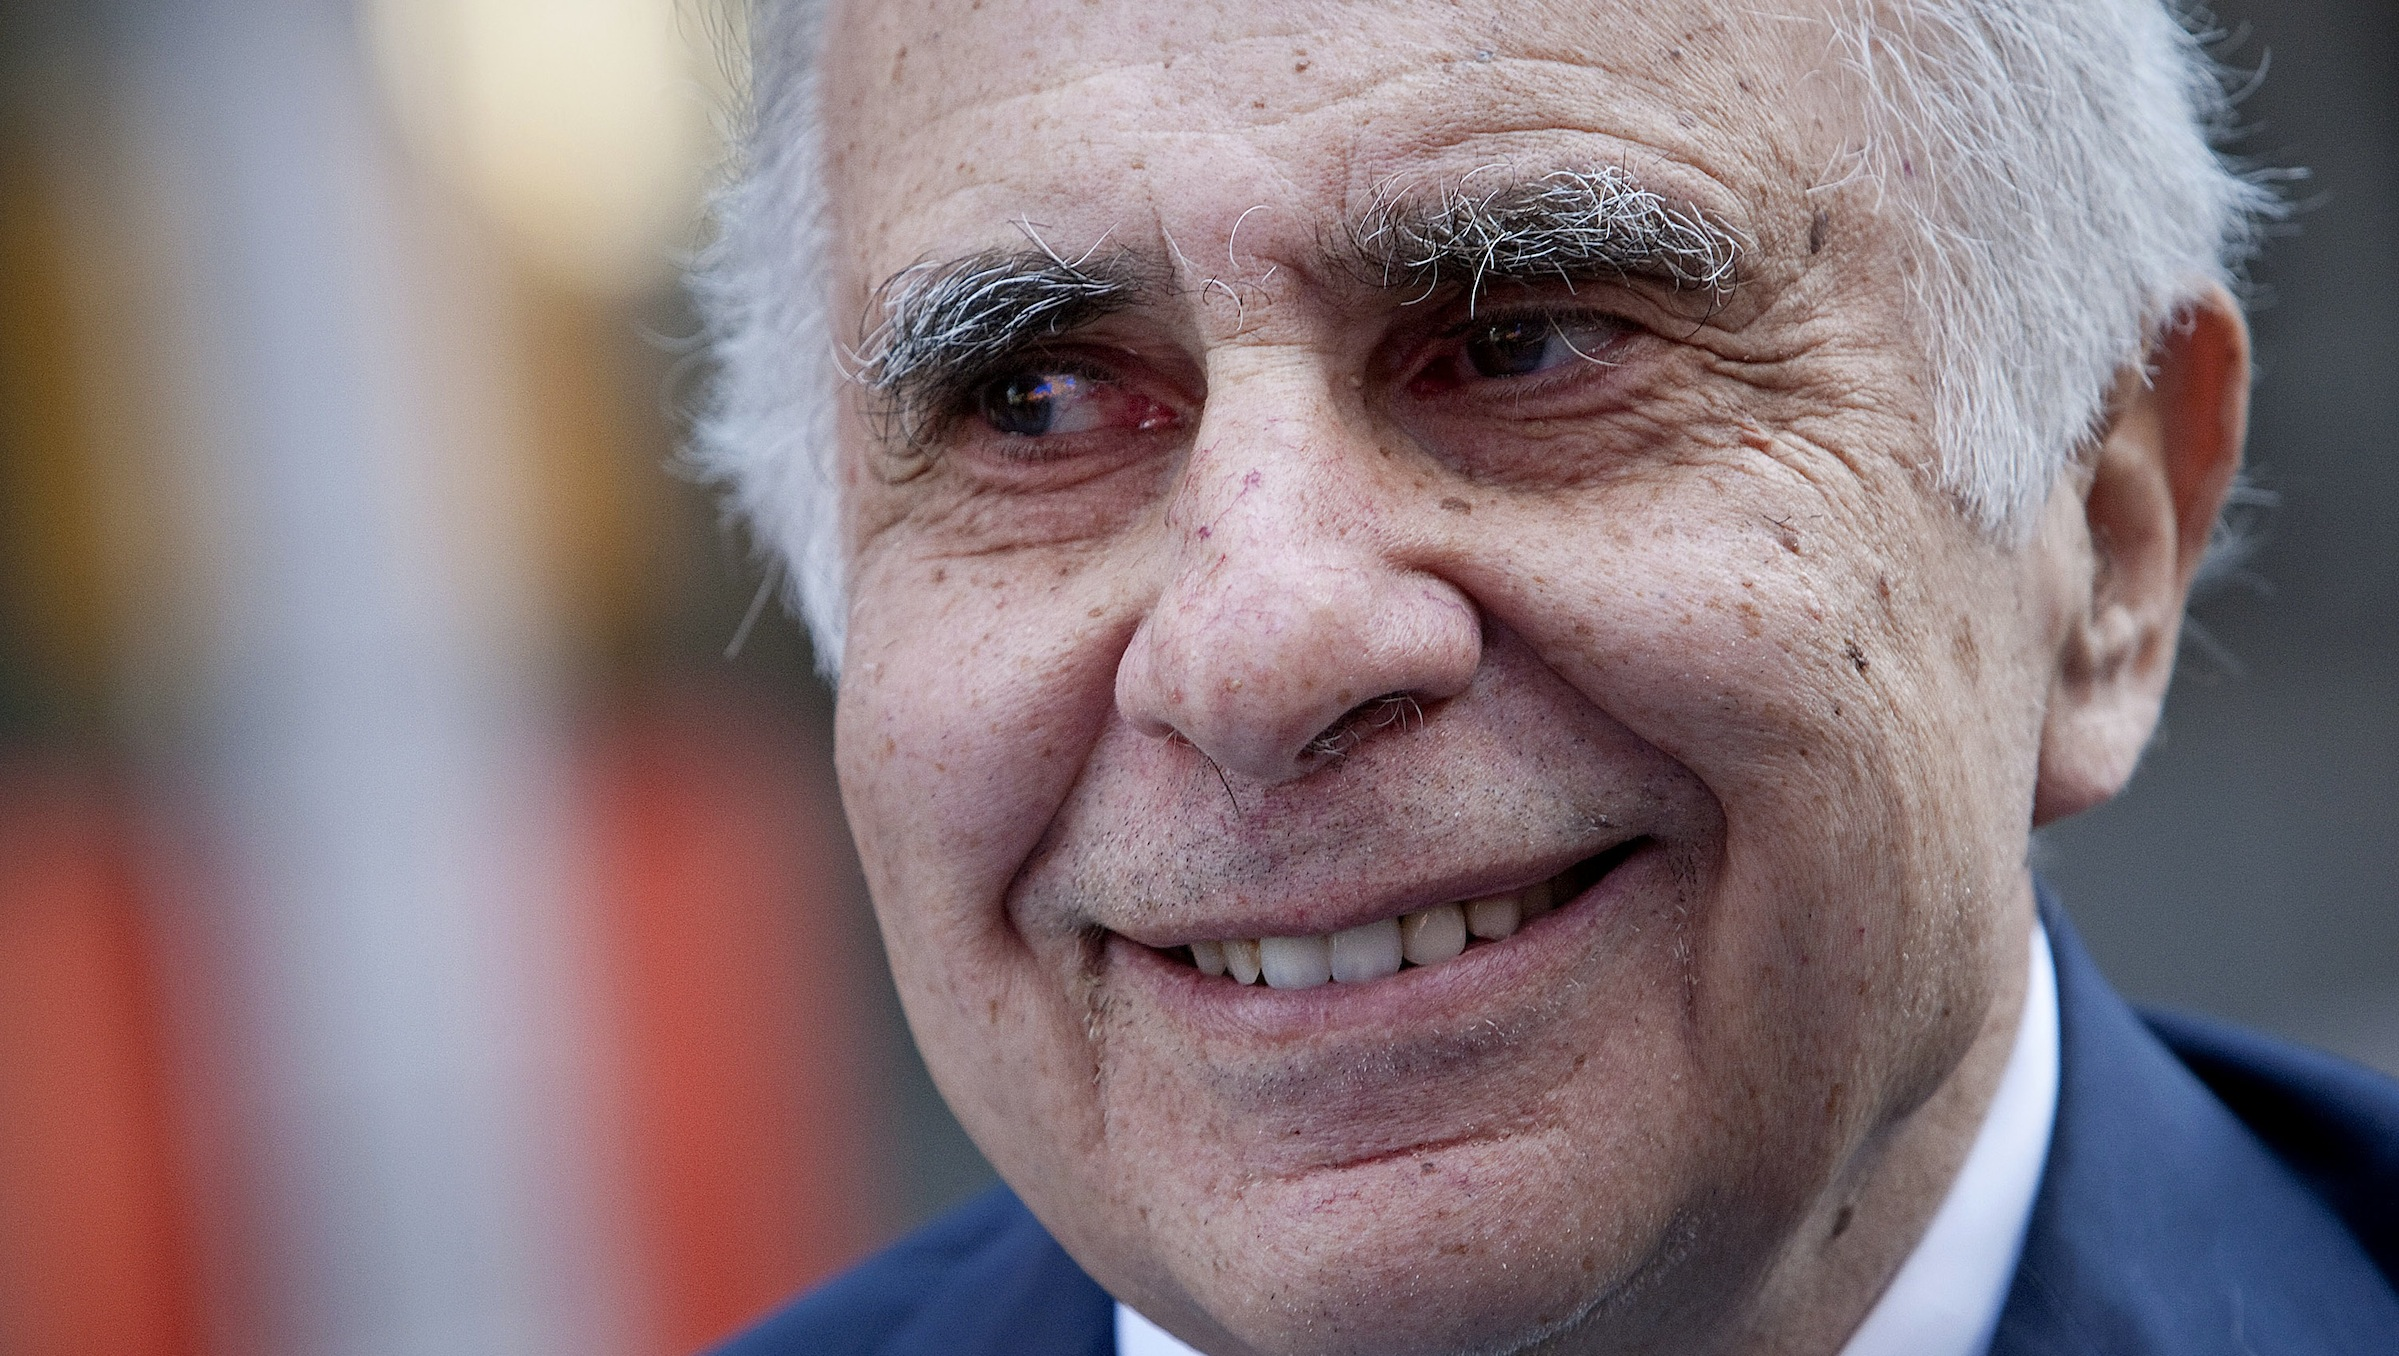 Carl Icahn, billionaire investor and chairman of Icahn Enterprises Holdings LP, stands outside of the Nasdaq MarketSite in New York, U.S., on Tuesday, March 27, 2012. Icahn announced his intention last month to offer $30 a share and give CVR Energy Inc. holders a right to as much as an additional $7 a share, a proposal that values the company at at least $2.6 billion, according to Bloomberg calculations. Photographer: Scott Eells/Bloomberg *** Local Caption *** Carl Icahn